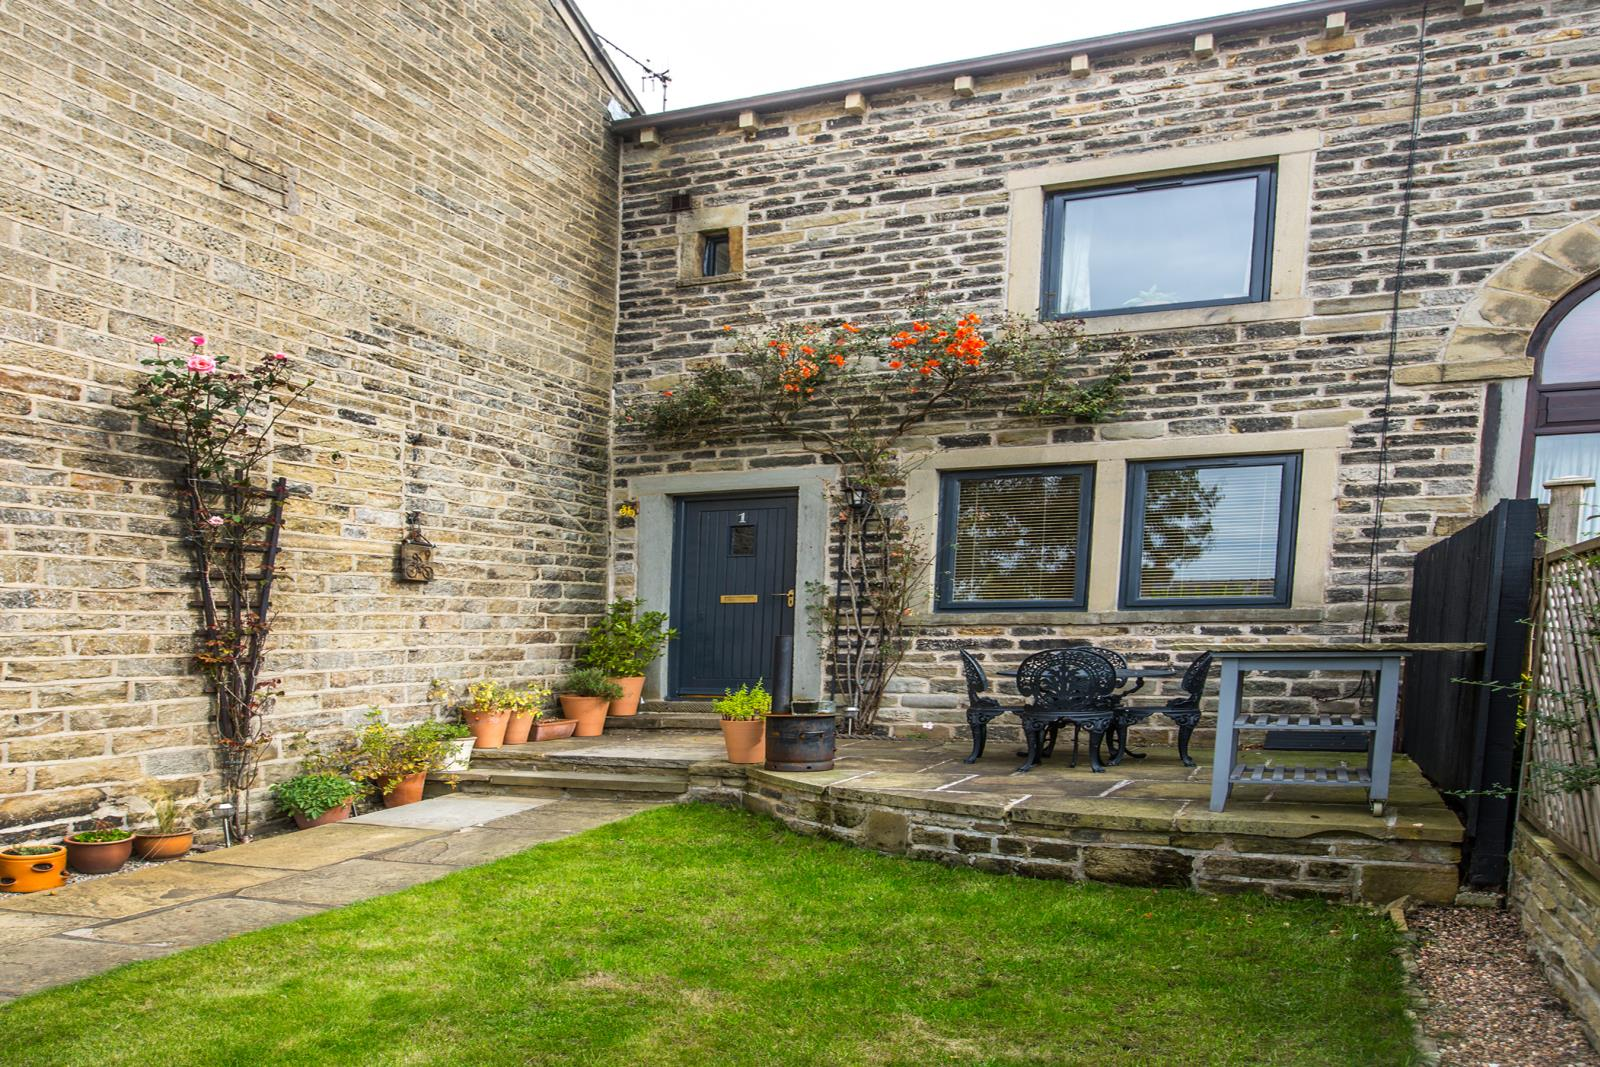 1 The Barn, Hall Ing Lane, Honley HD9 6QX